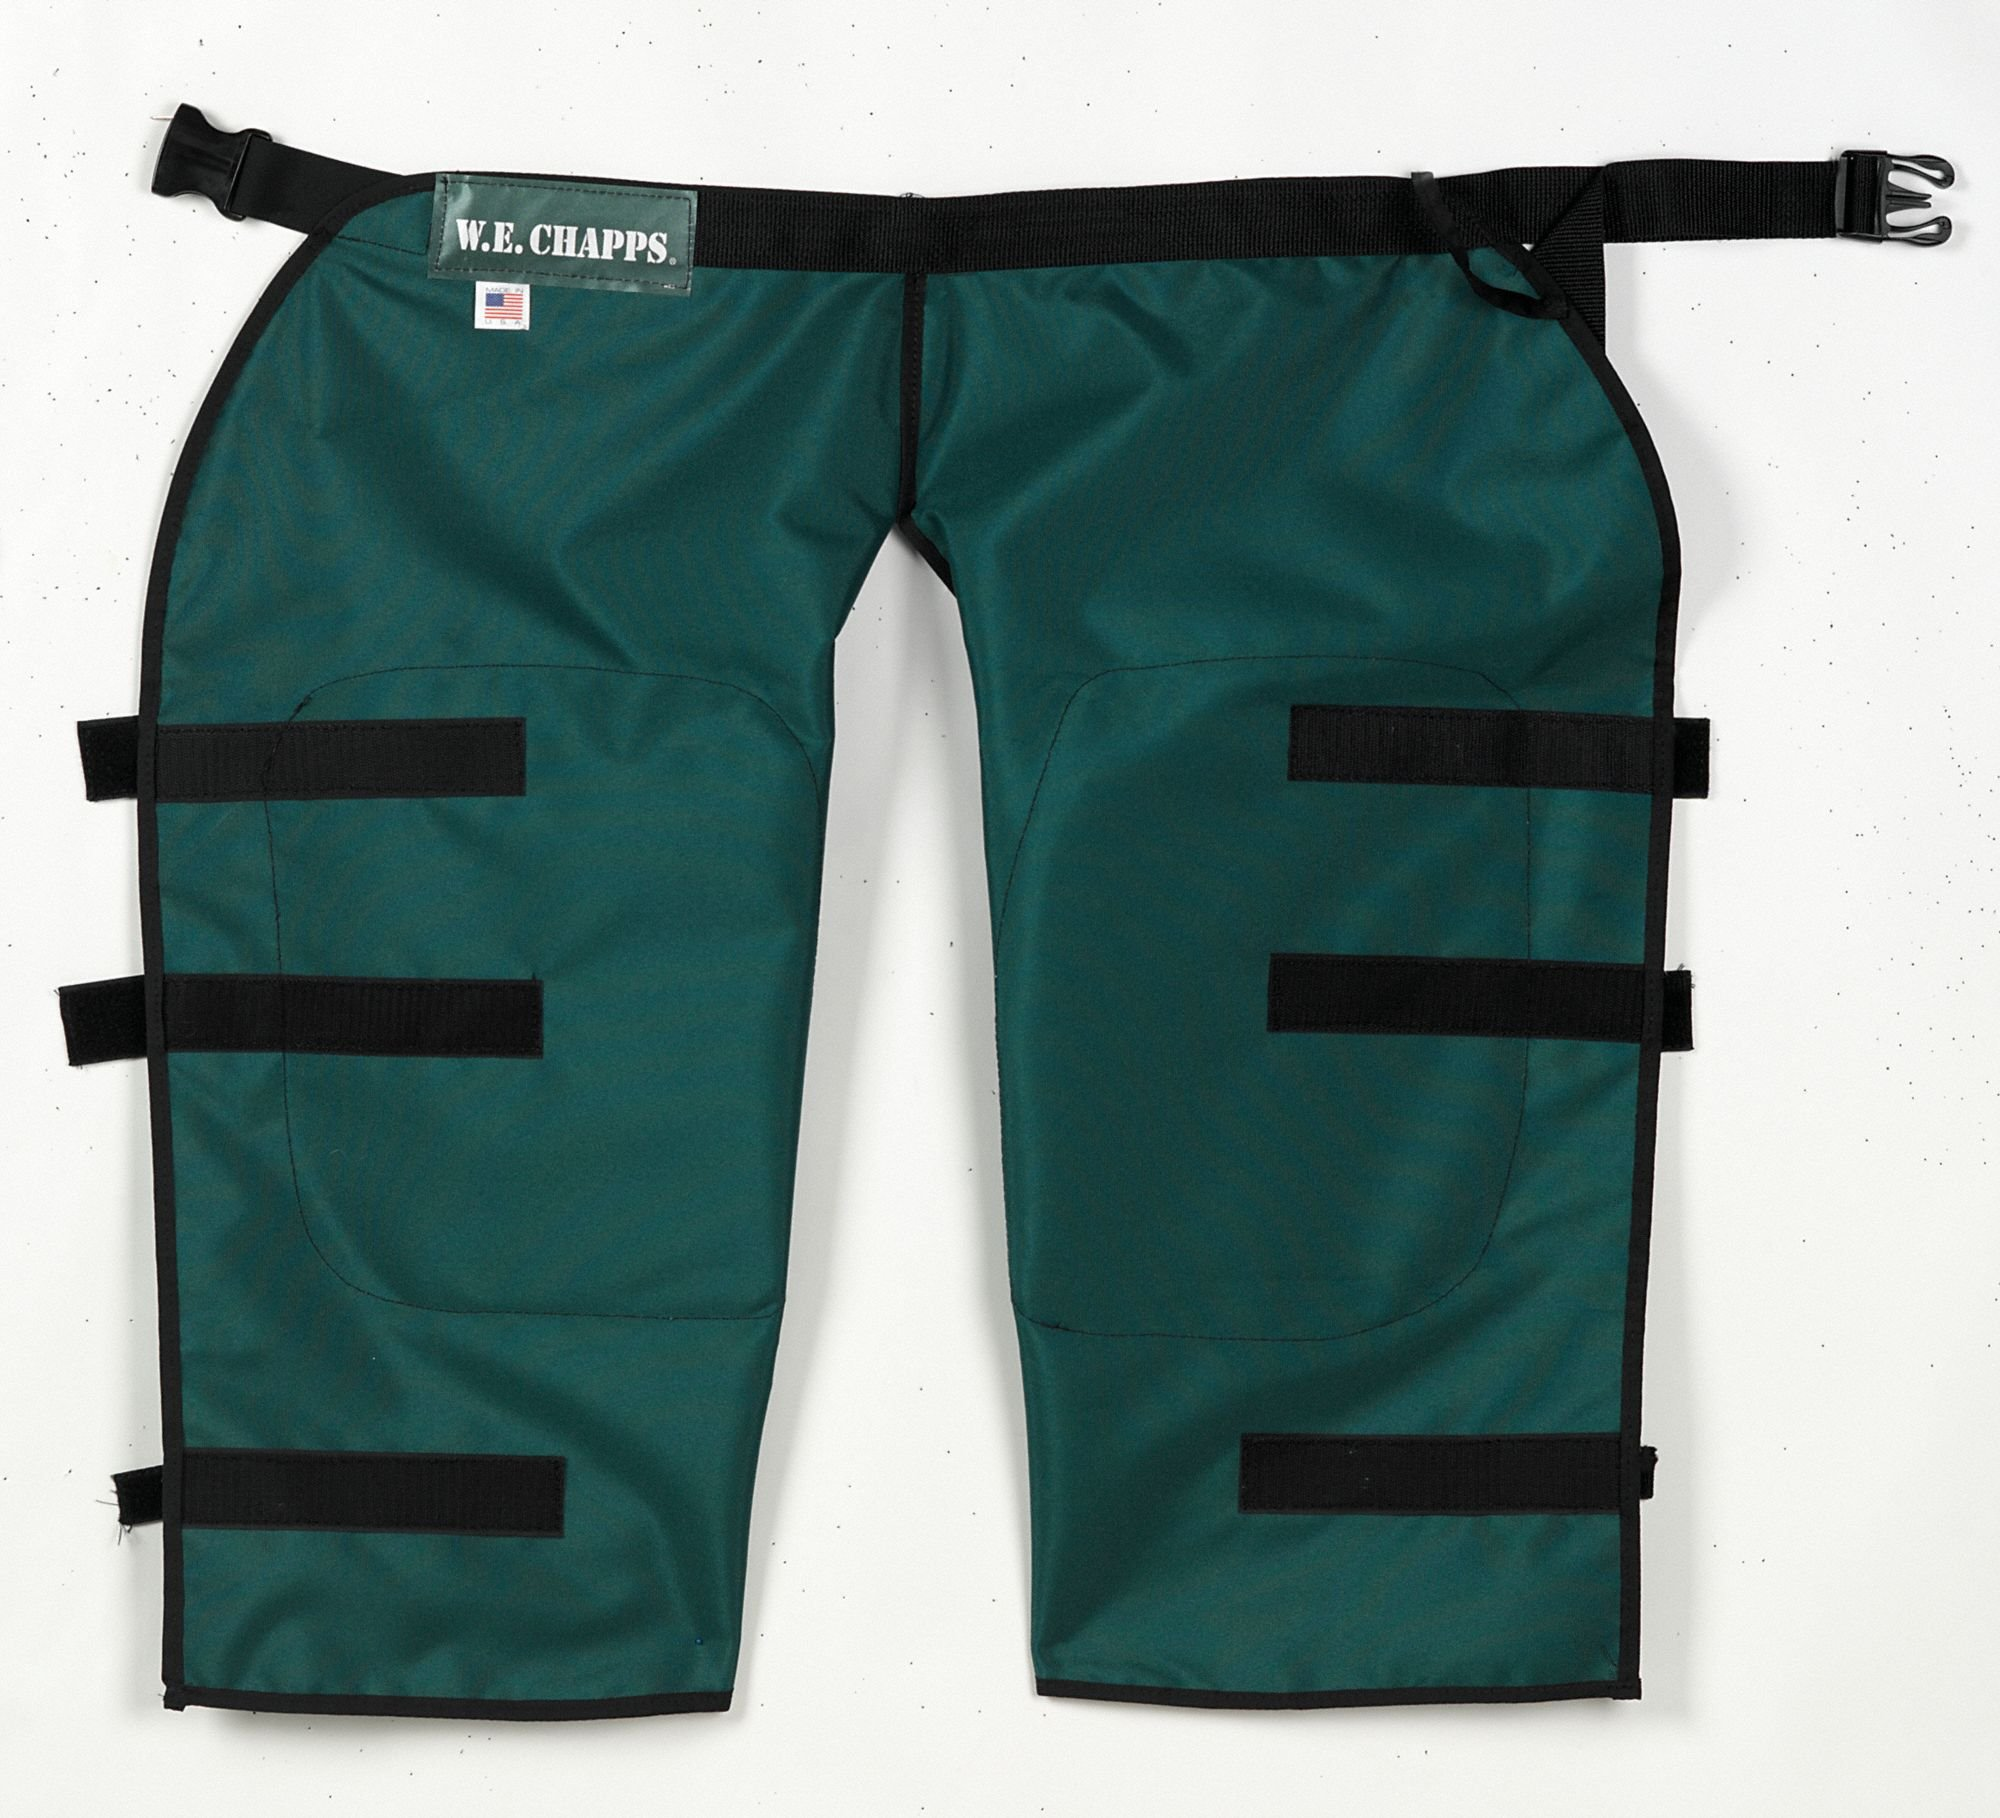 Hedge Trimmer Chaps, Dark Green, 29x29In by W.E. Chapps, Inc. (Image #1)